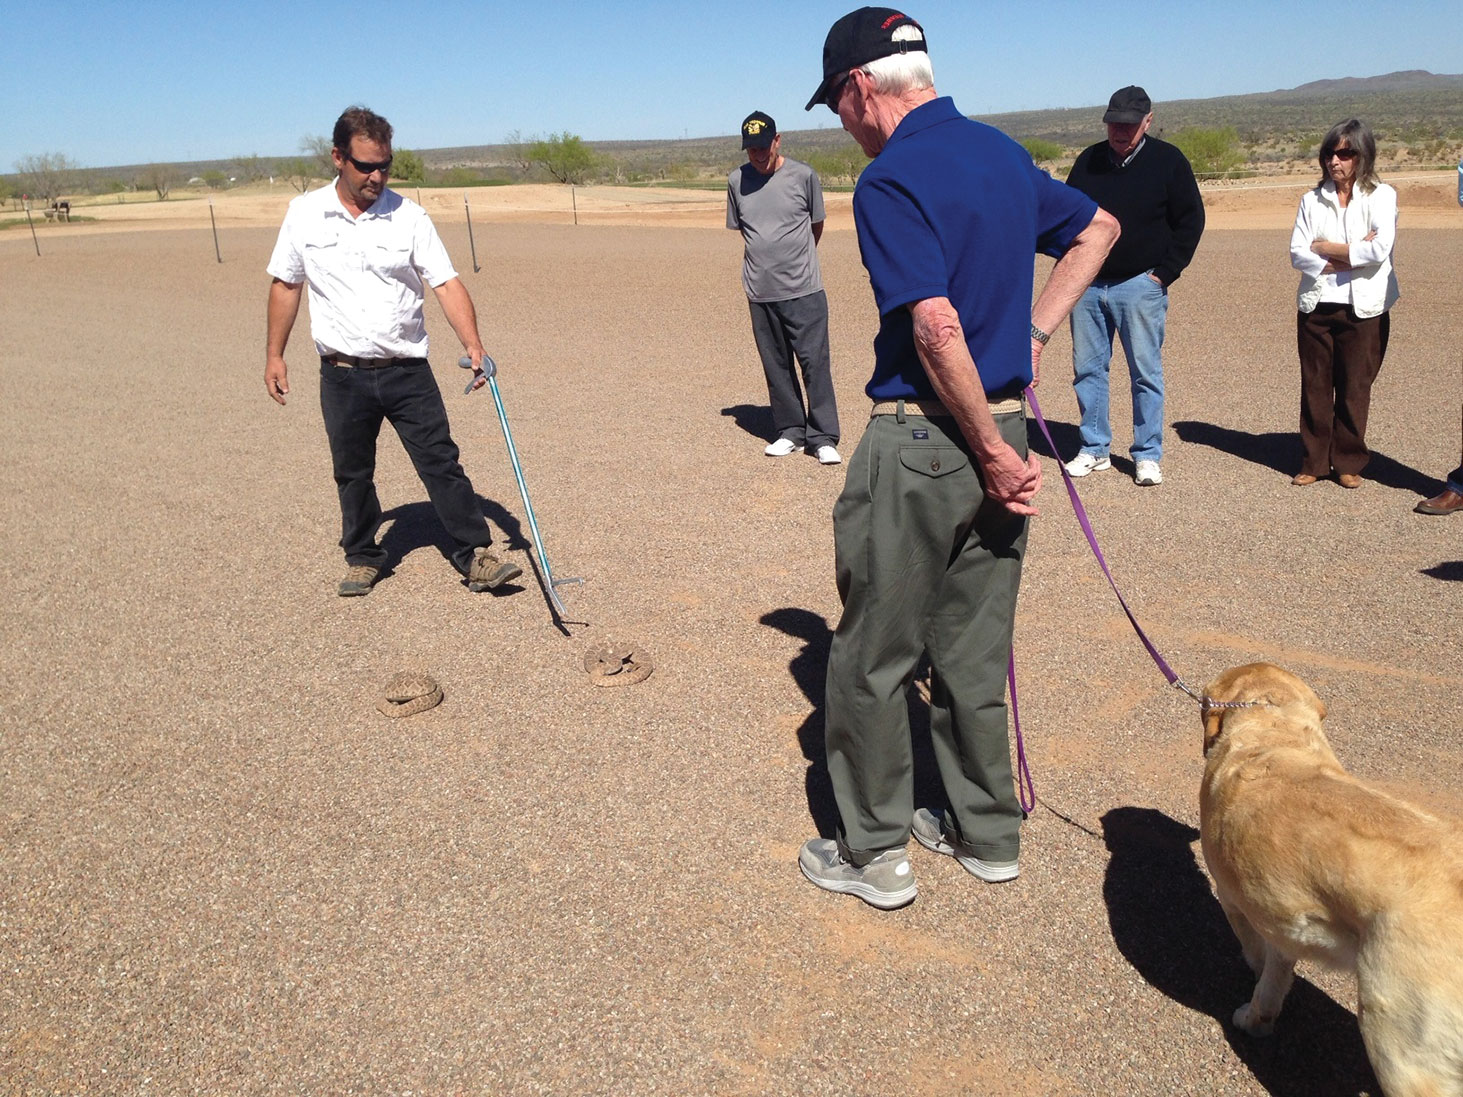 Jay Smith of Community Dog Training working with SBR resident Dale Barringer and his dog, Shasta